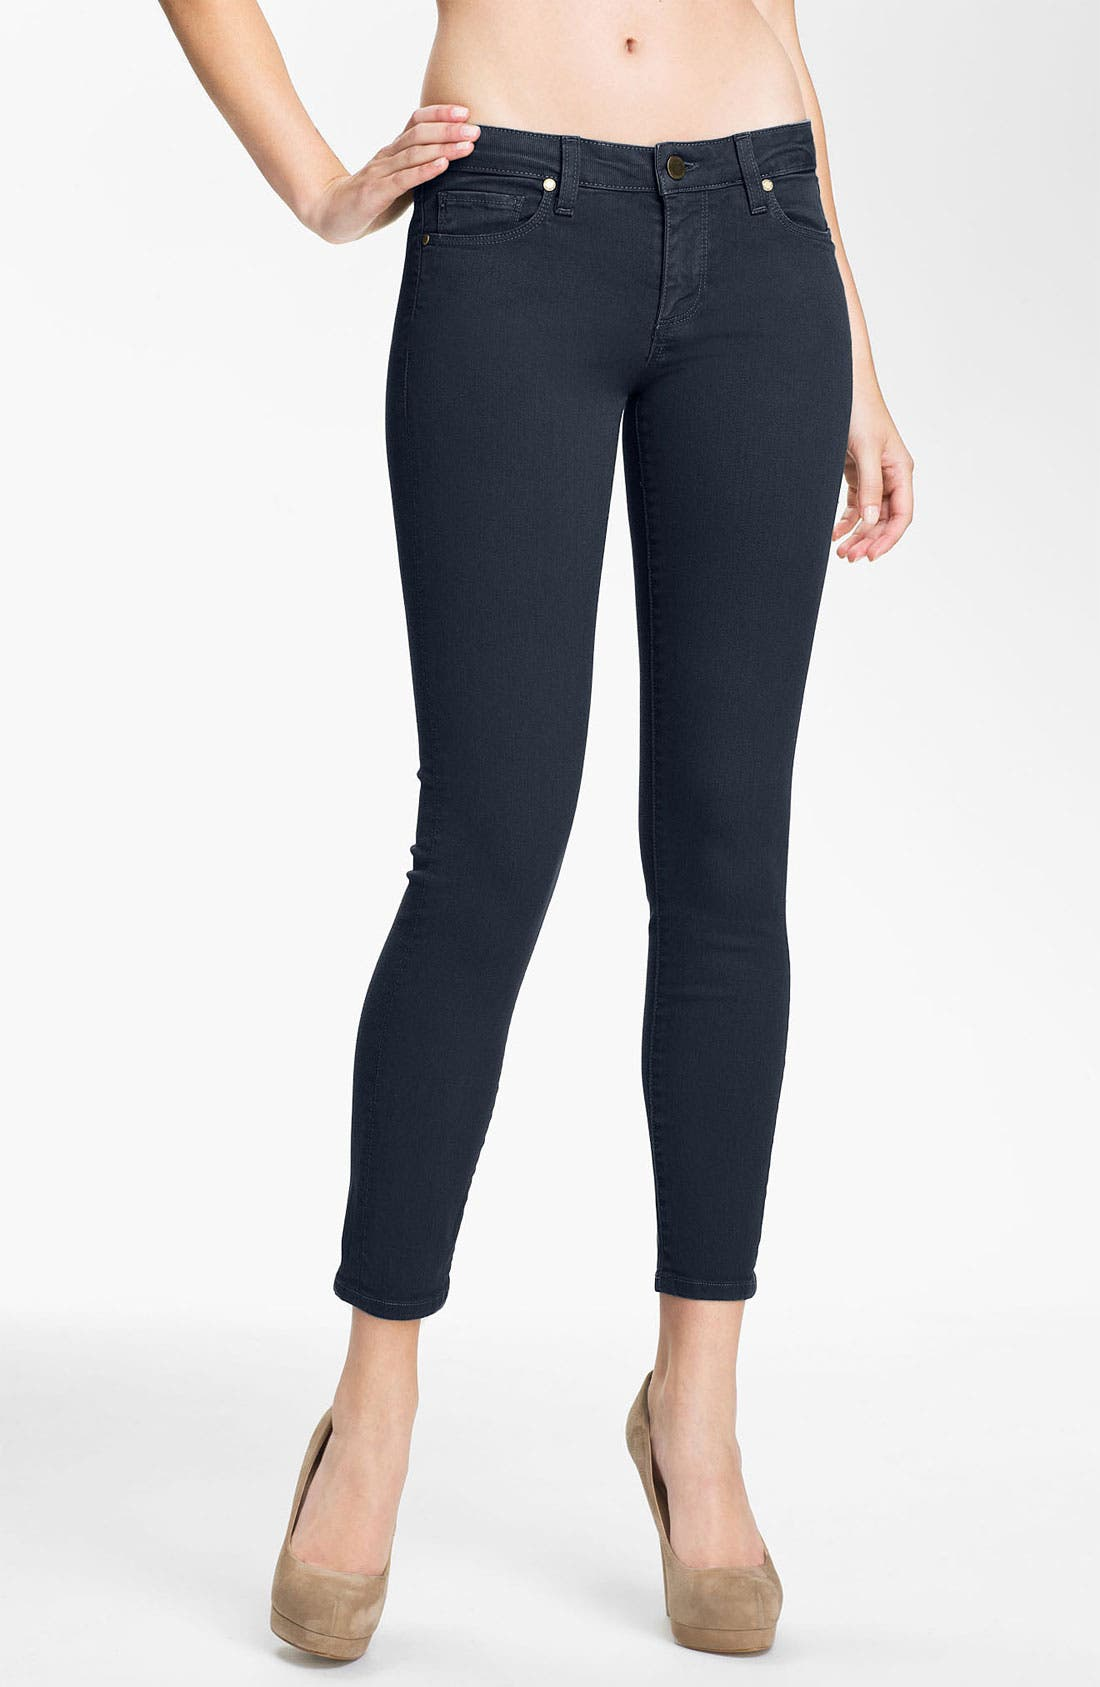 Alternate Image 1 Selected - Paige Denim 'Skyline' Ankle Peg Skinny Stretch Jeans (Drift)